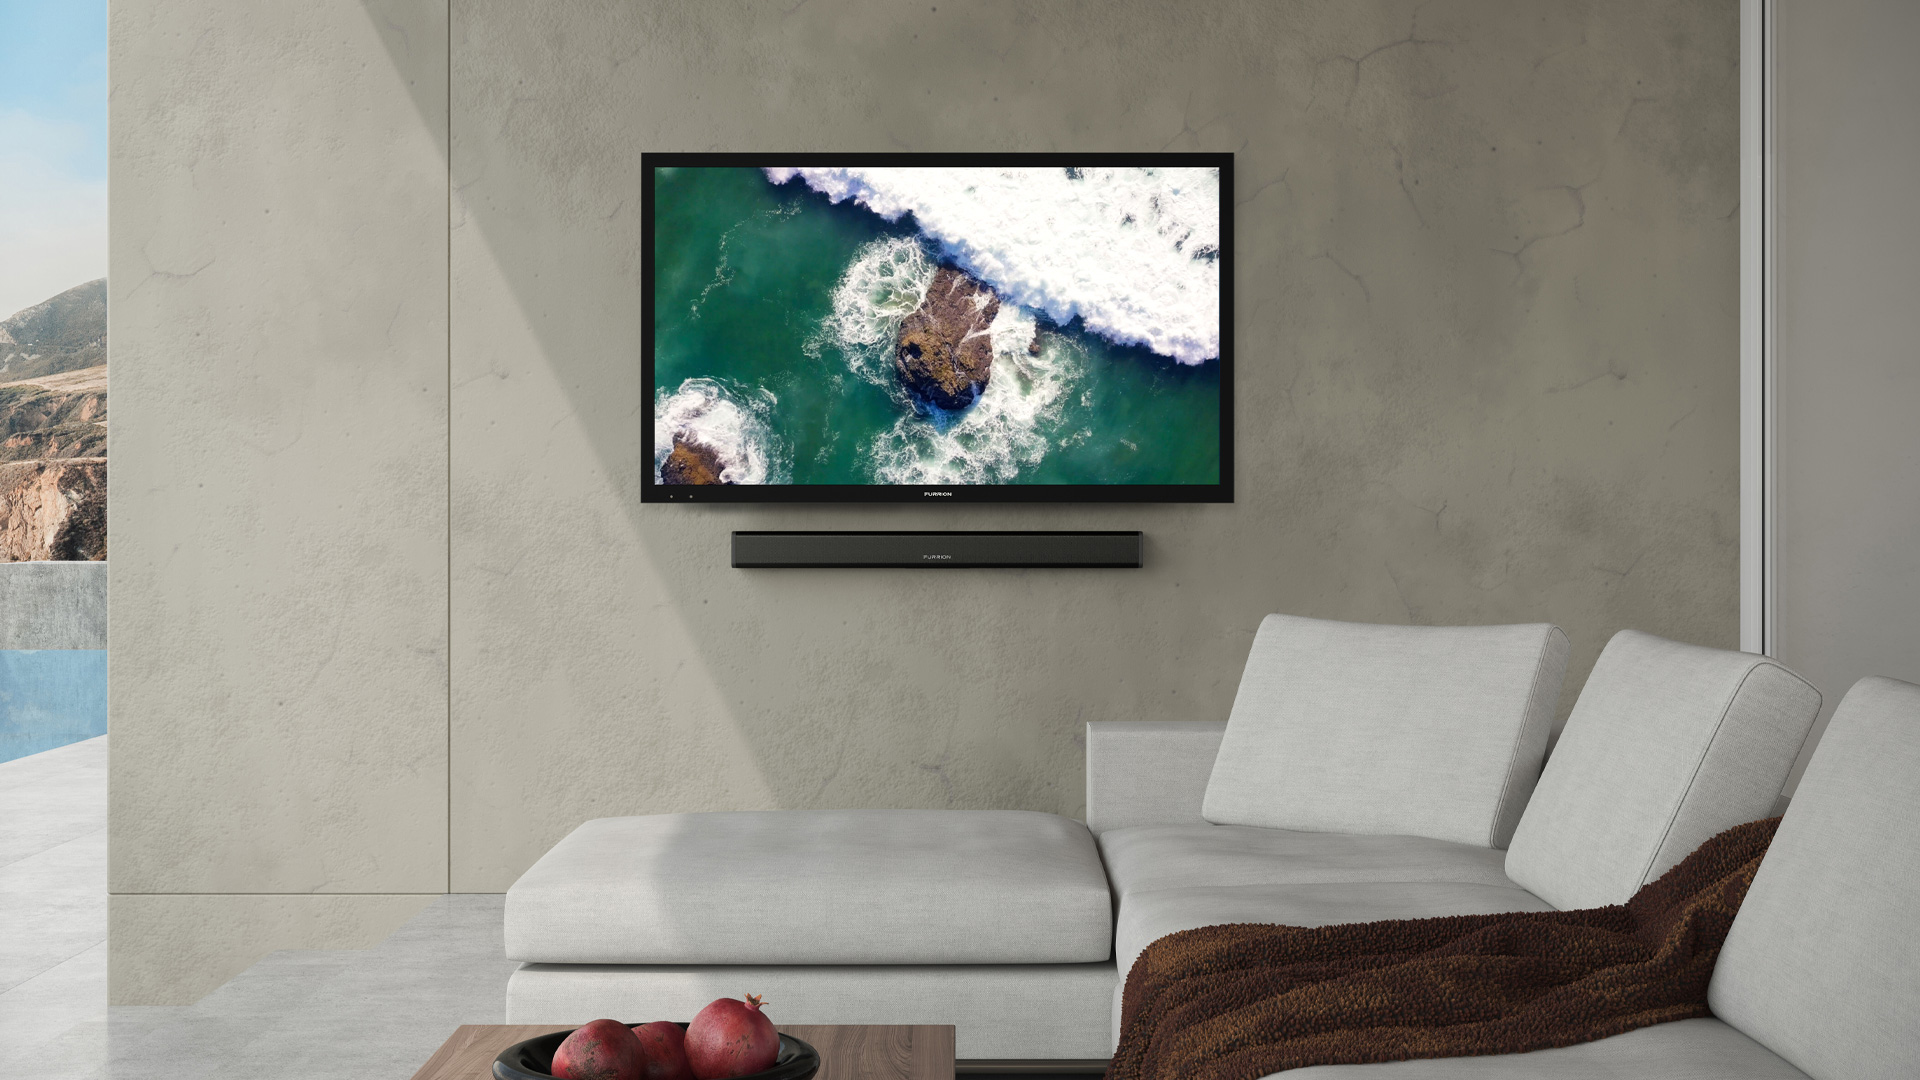 Furrion Aurora - Partial Sun Series 55-Inch Weatherproof 4K Ultra-High Definition LED Outdoor Television with Auto-Brightness Control for Outdoor Entertainment - FDUP55CBR